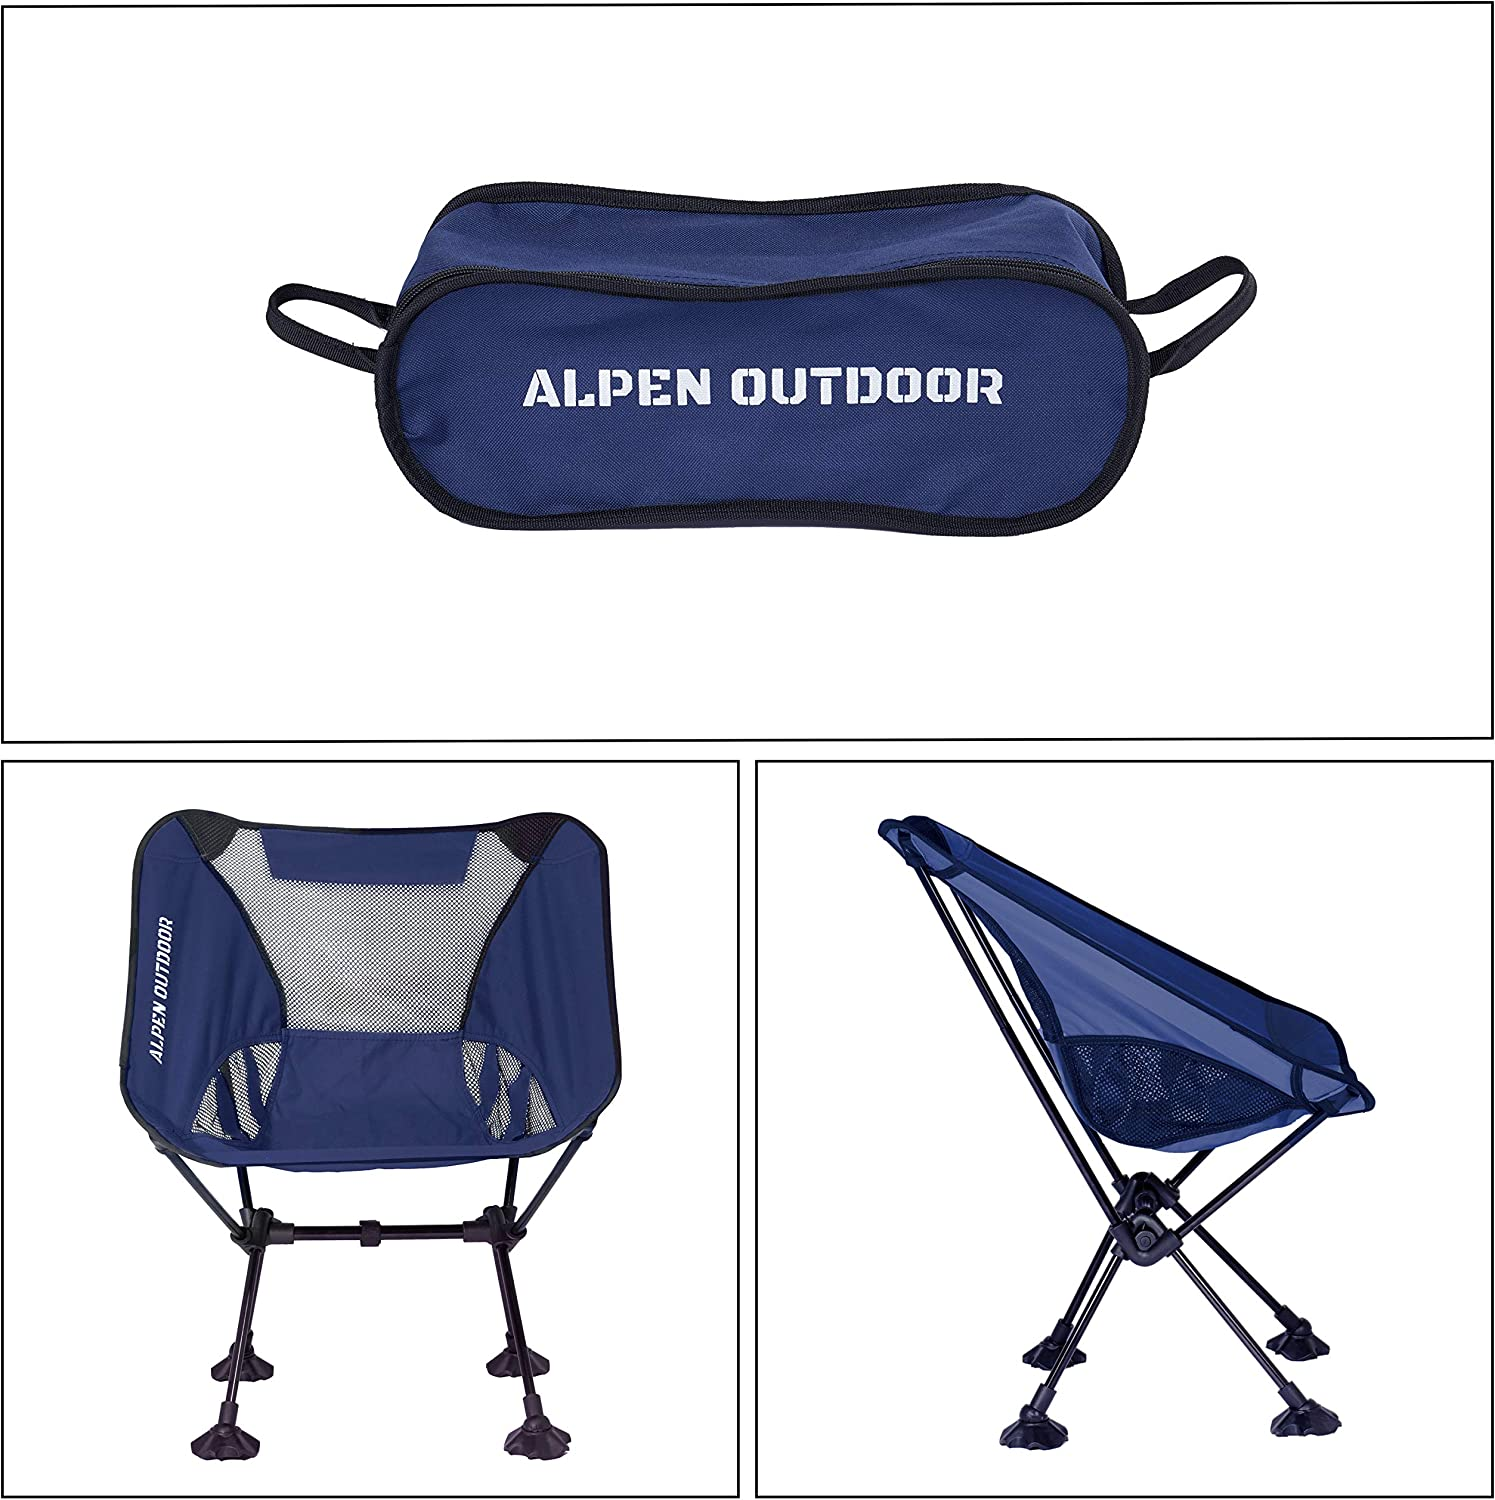 Genric Alpen Outdoor Ultralight Portable Camping Chair Compact /& Heavy Duty with Carry Bag Foldable Backpacking Chair for Outdoor Hiking Picnic Beach and Festival